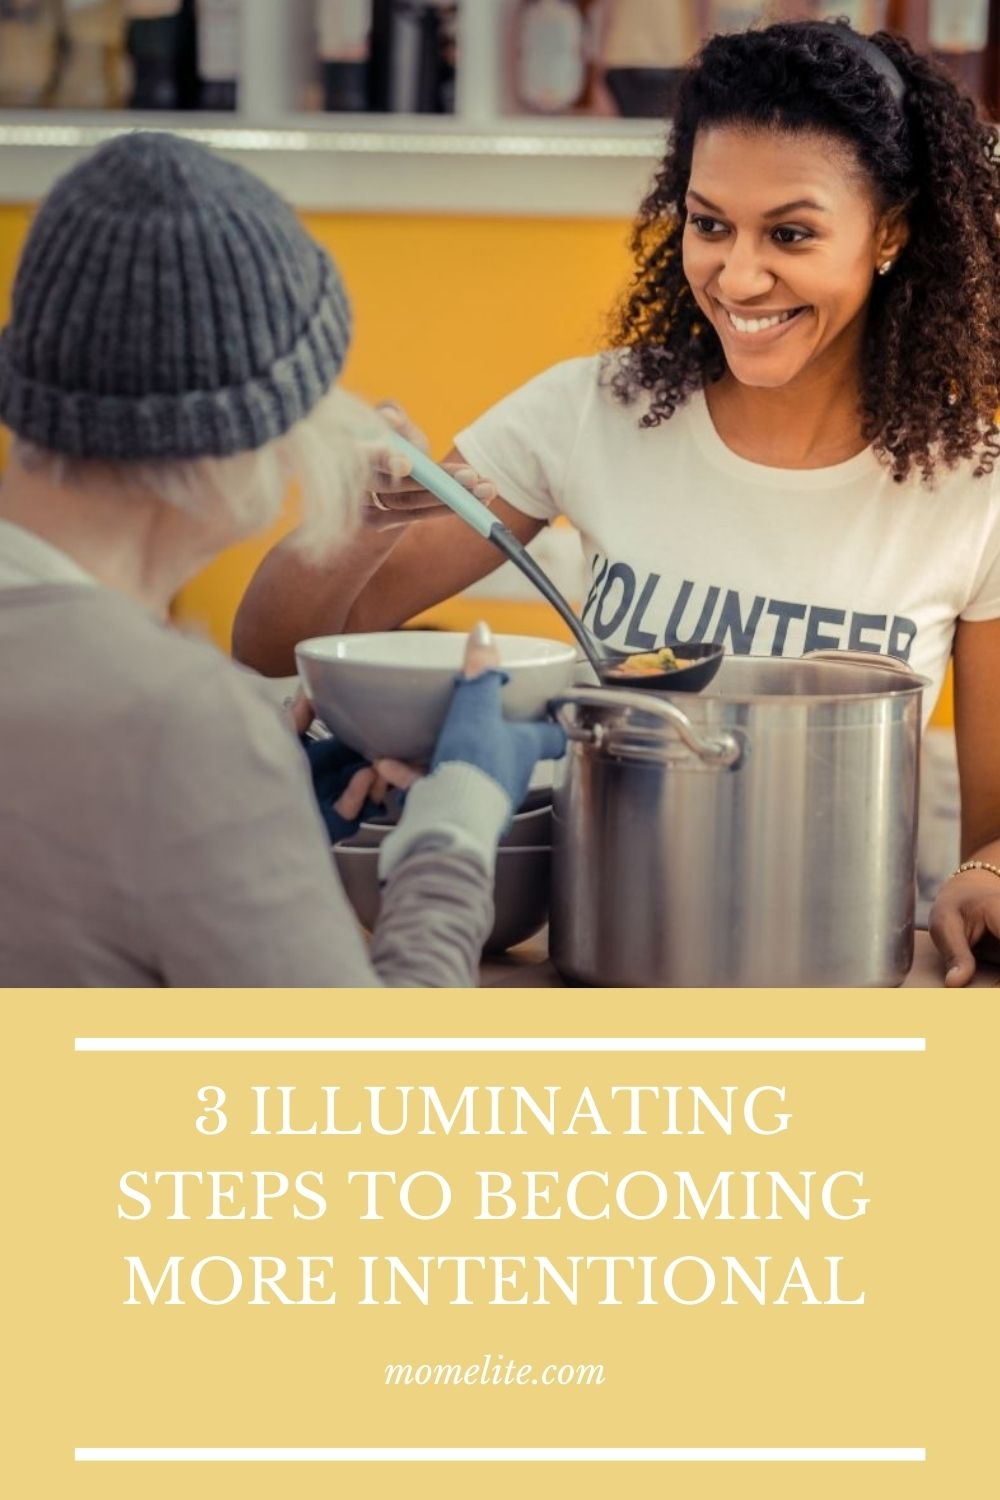 3 ILLUMINATING STEPS TO BECOMING MORE INTENTIONAL